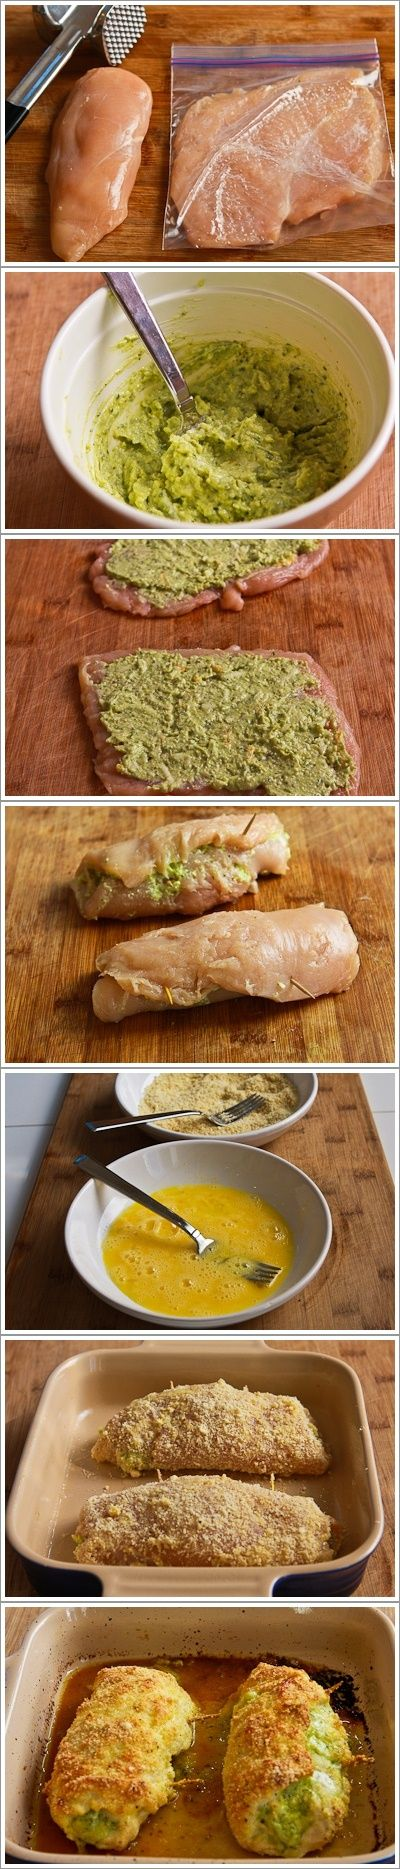 Recipe for Baked Chicken Stuffed with Pesto and Cheese & links to many other pesto recipes & recipes using pesto.